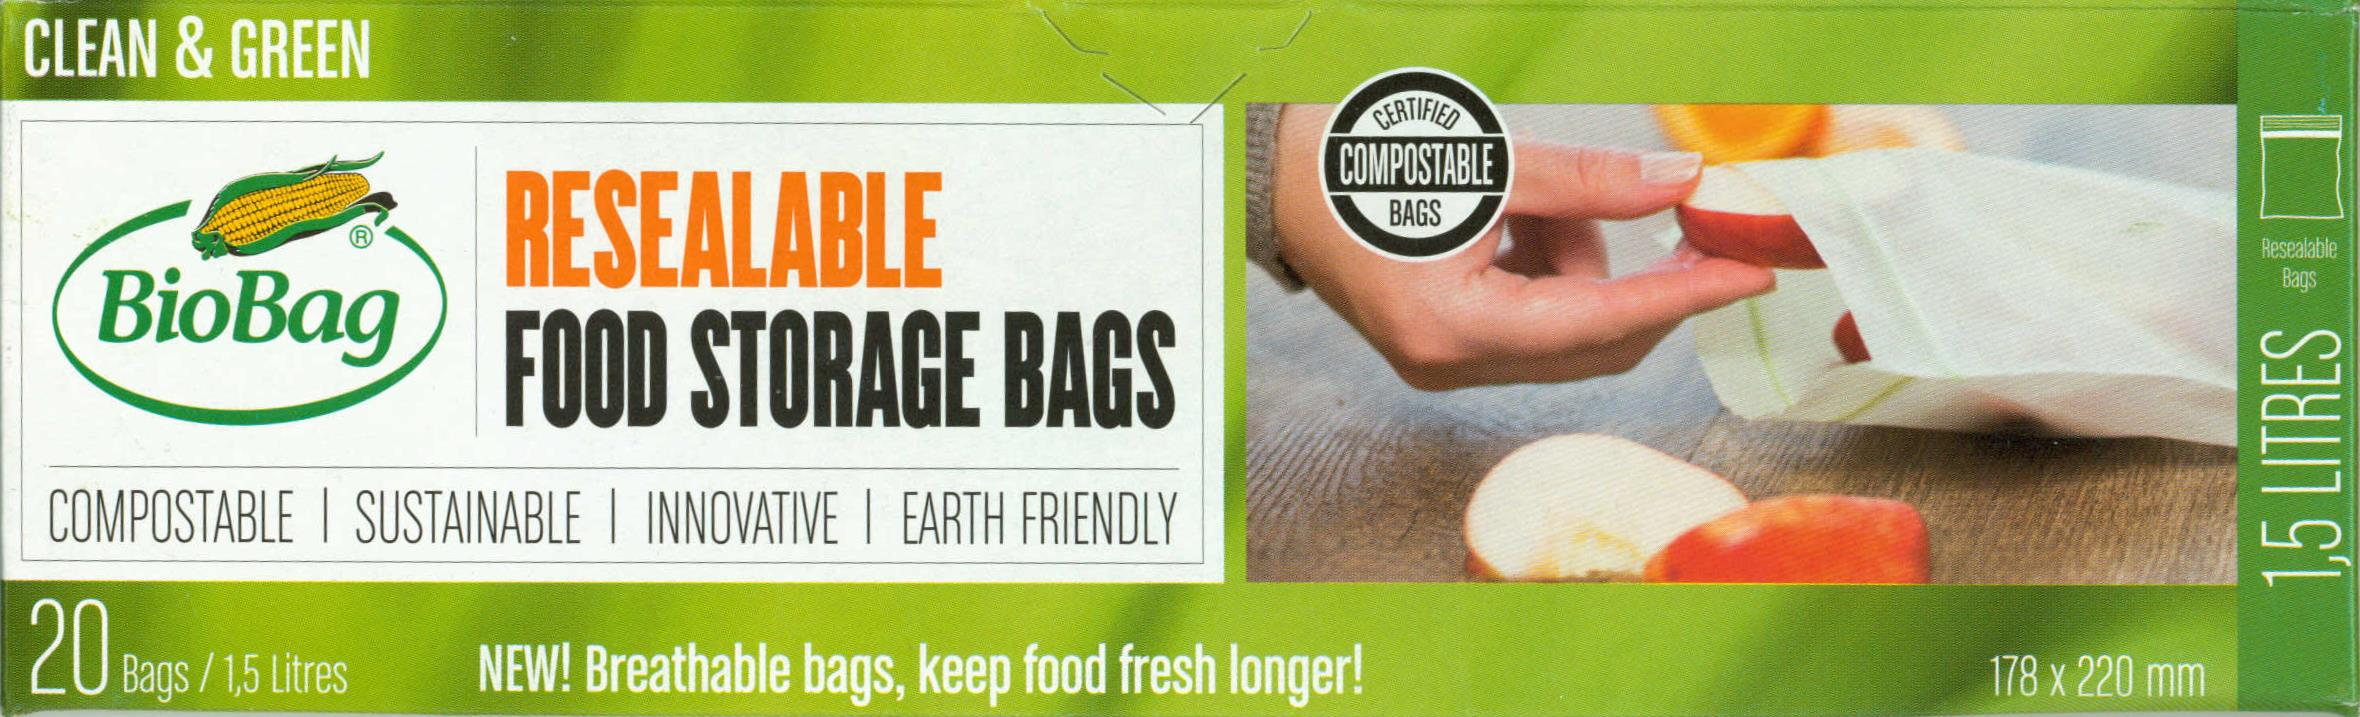 BioBag Resealable Food Storage Bag Box Carton